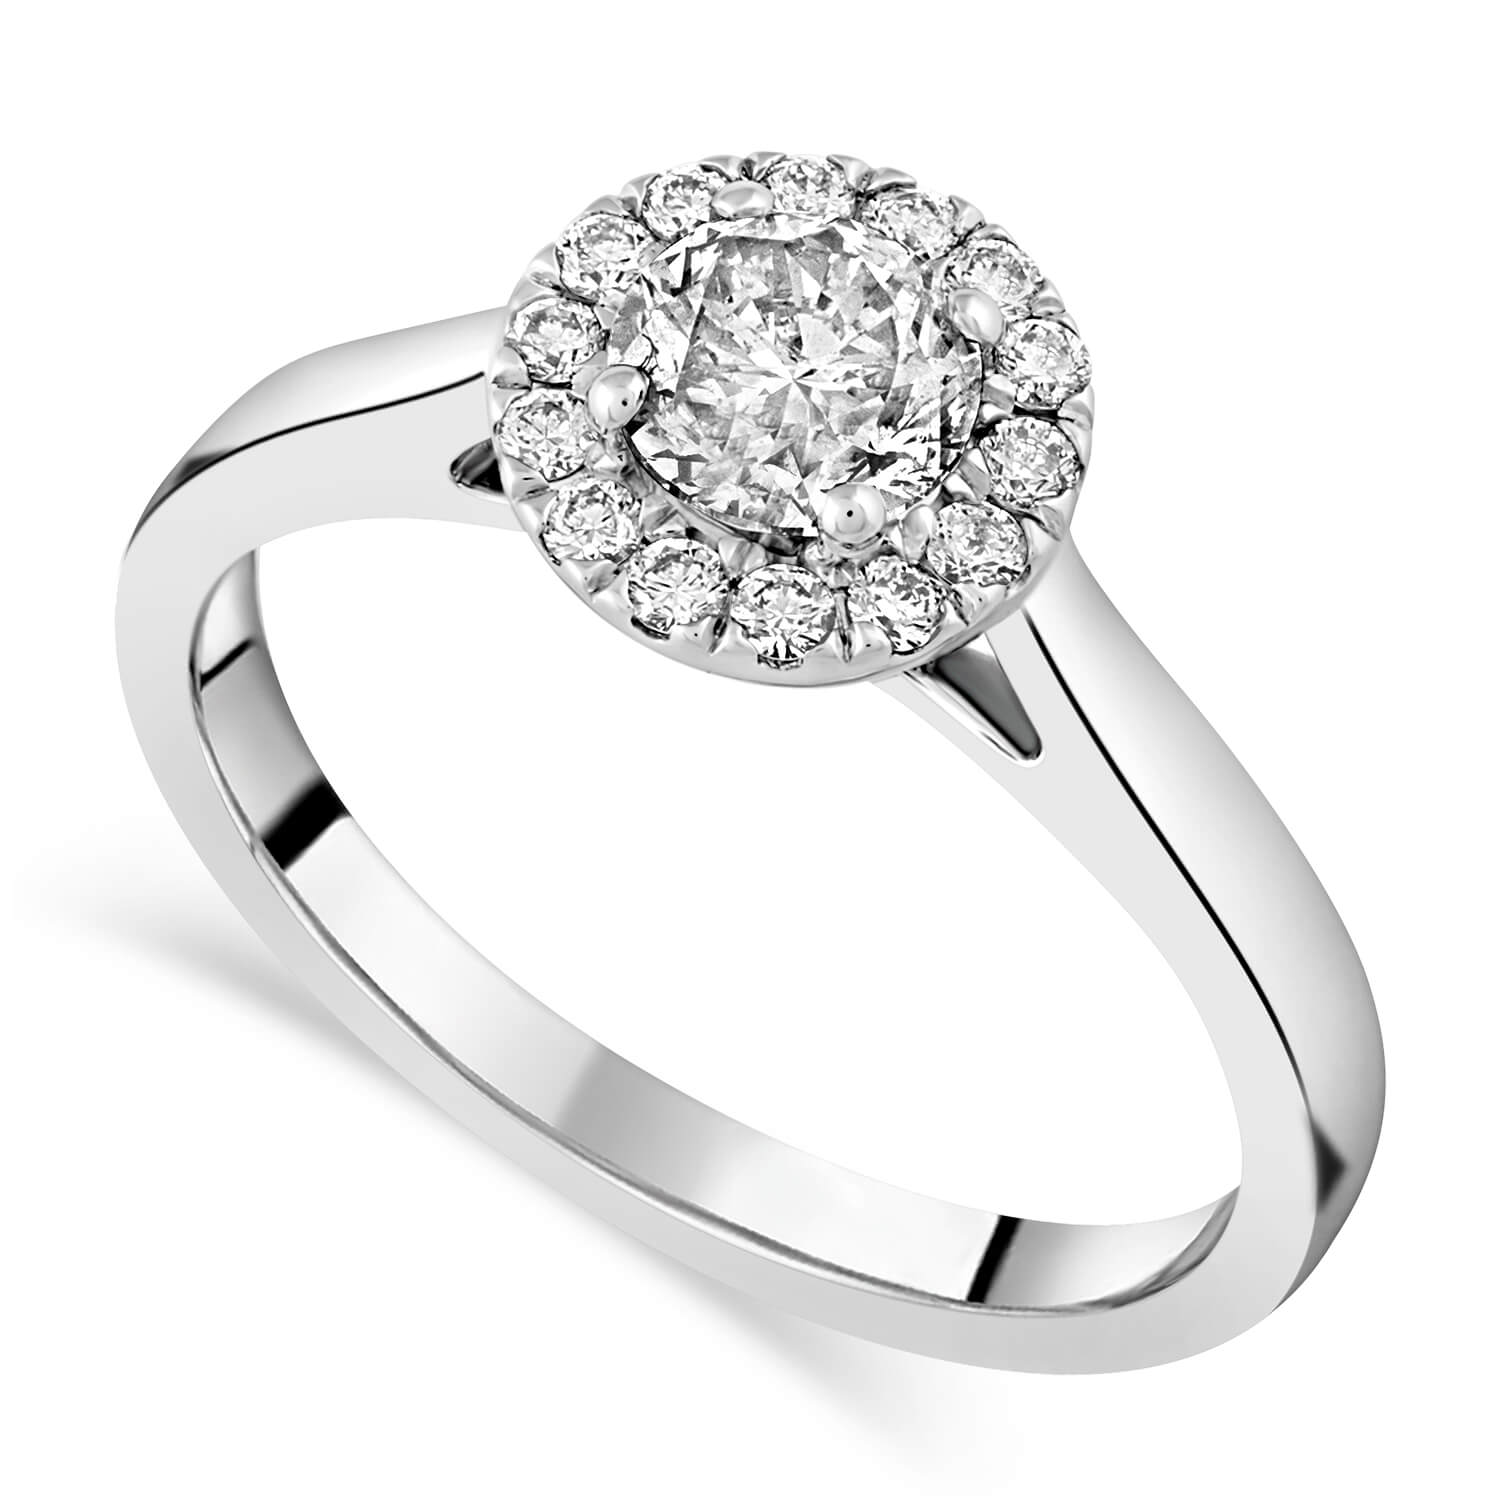 Timeless Diamonds Platinum 0.80 carat diamond halo engagement ring